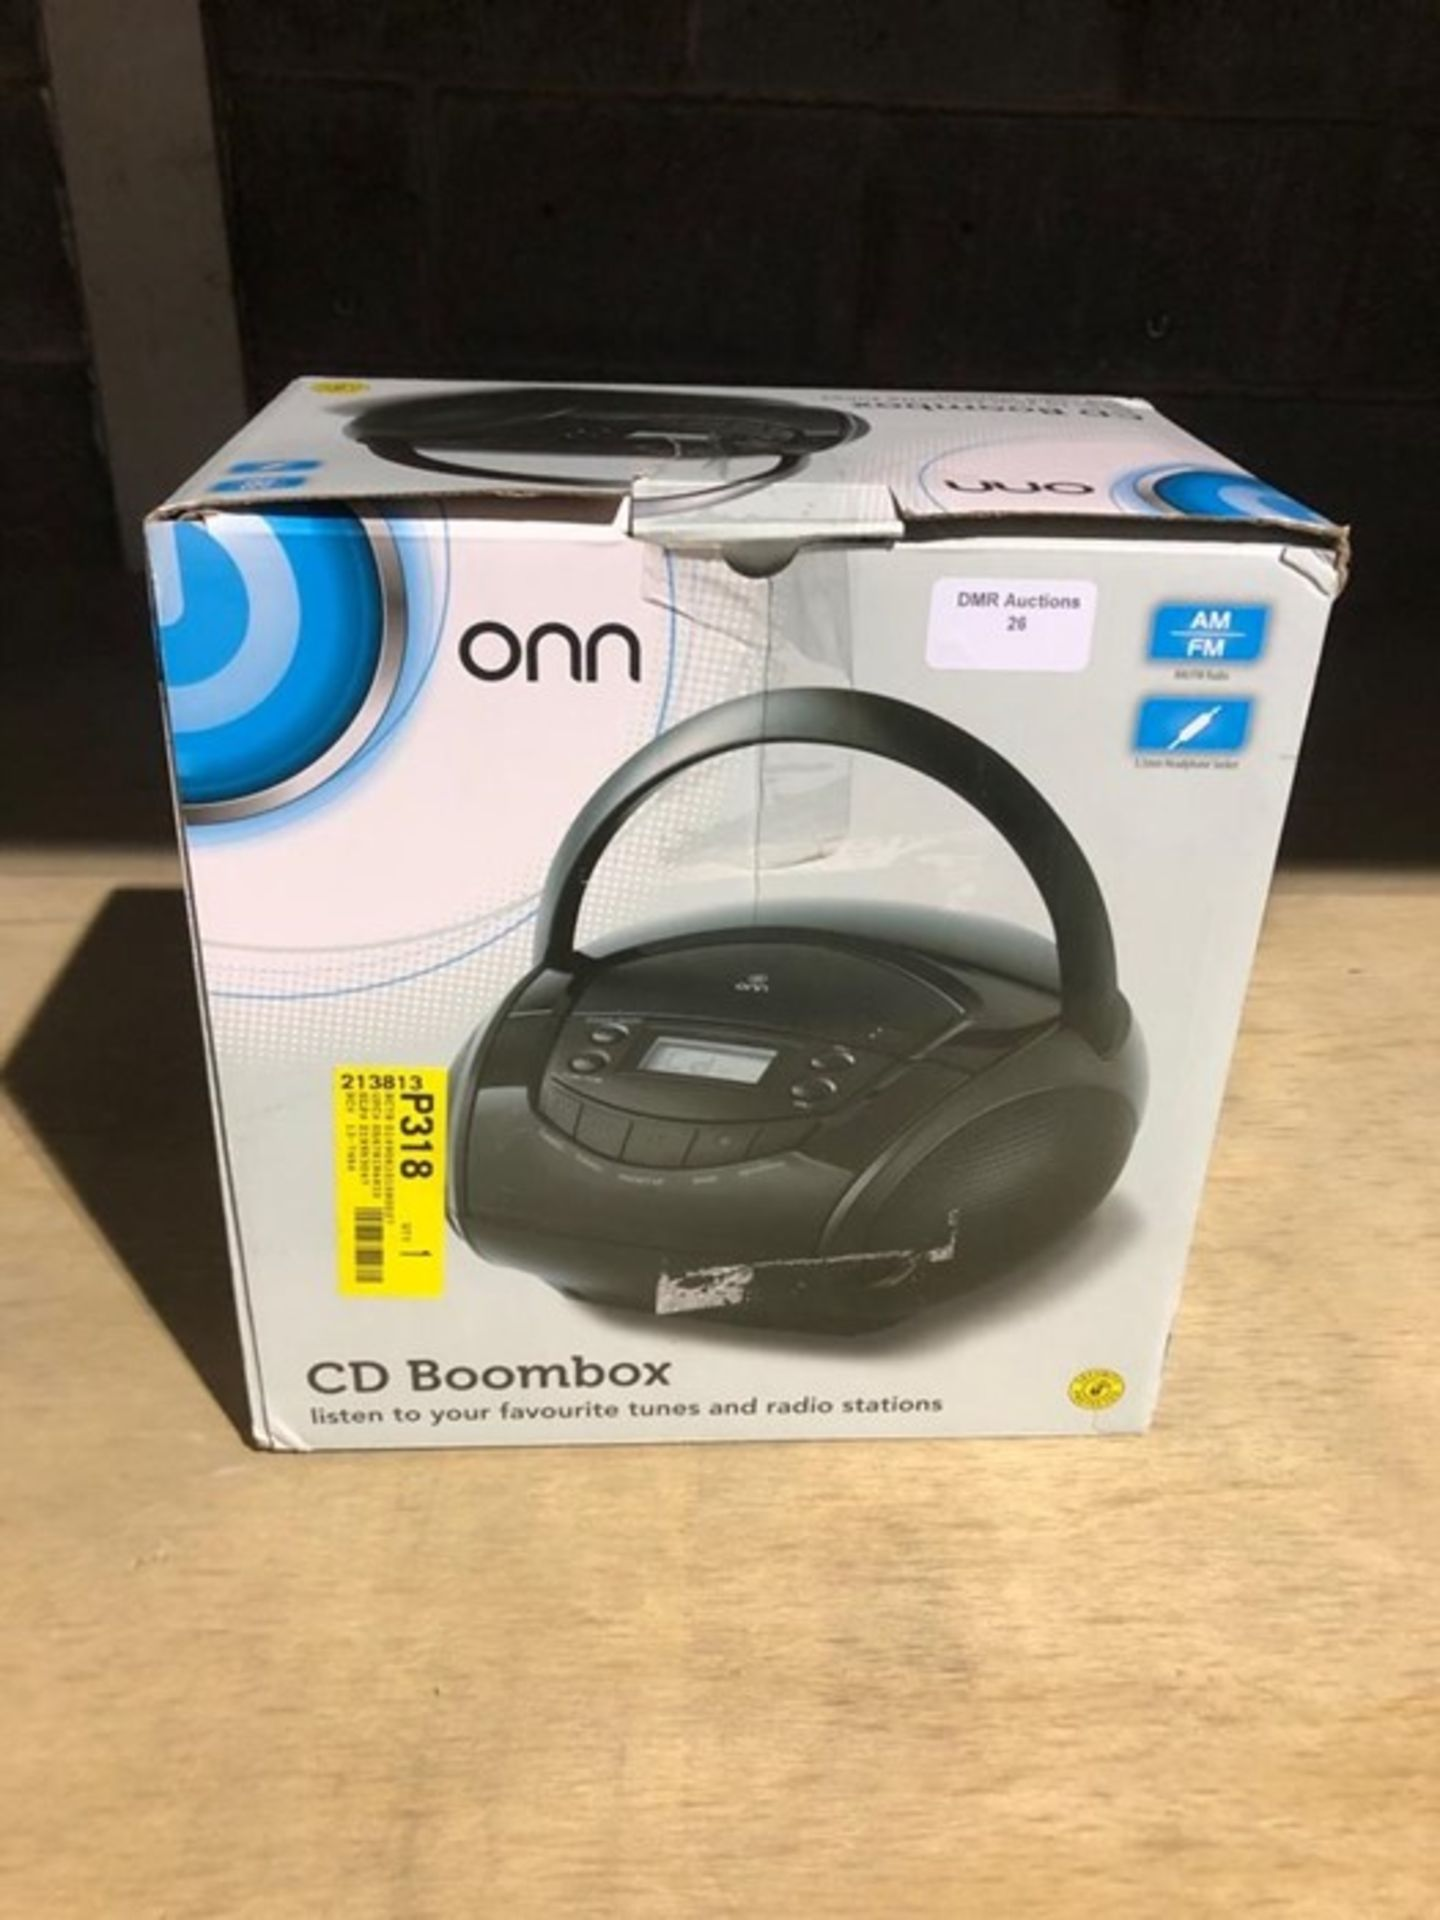 Lot 56 - 1 BOXED ONN CD BOOMBOX IN BLACK / RRP £20.00 - BL -3813 (VIEWING HIGHLY RECOMMENDED)